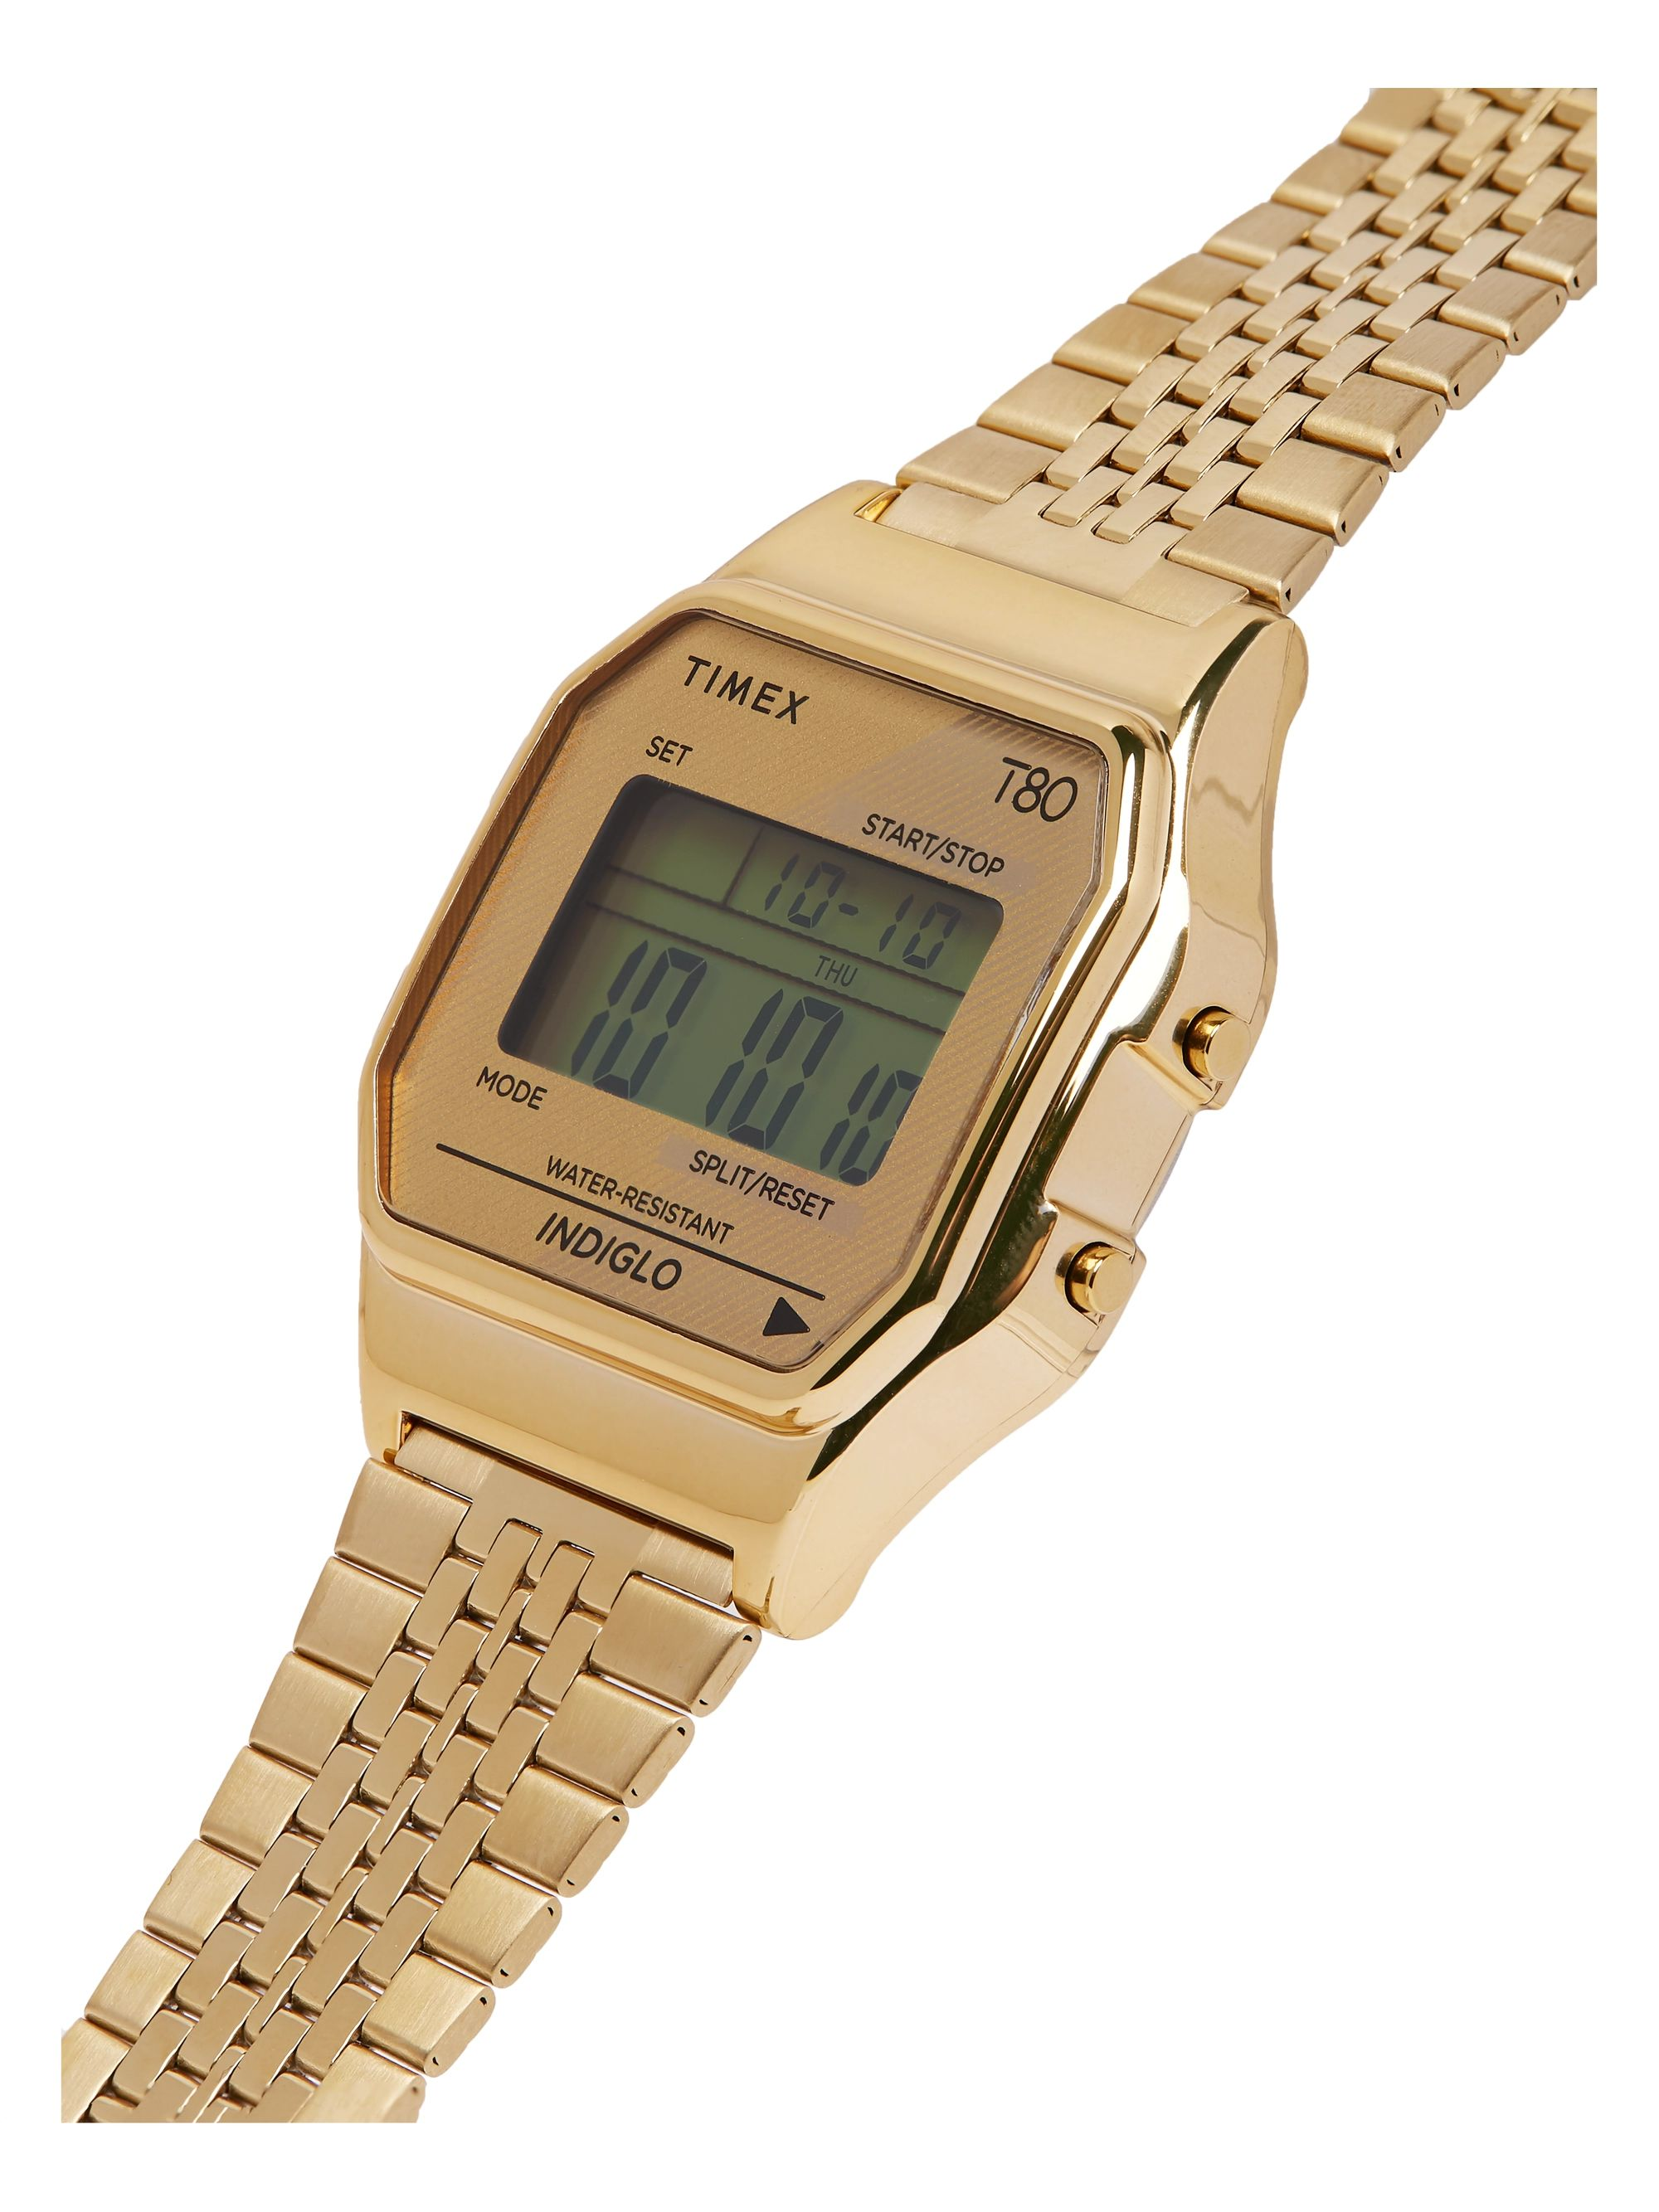 Timex T80 34mm Gold-Tone Stainless Steel Digital Watch